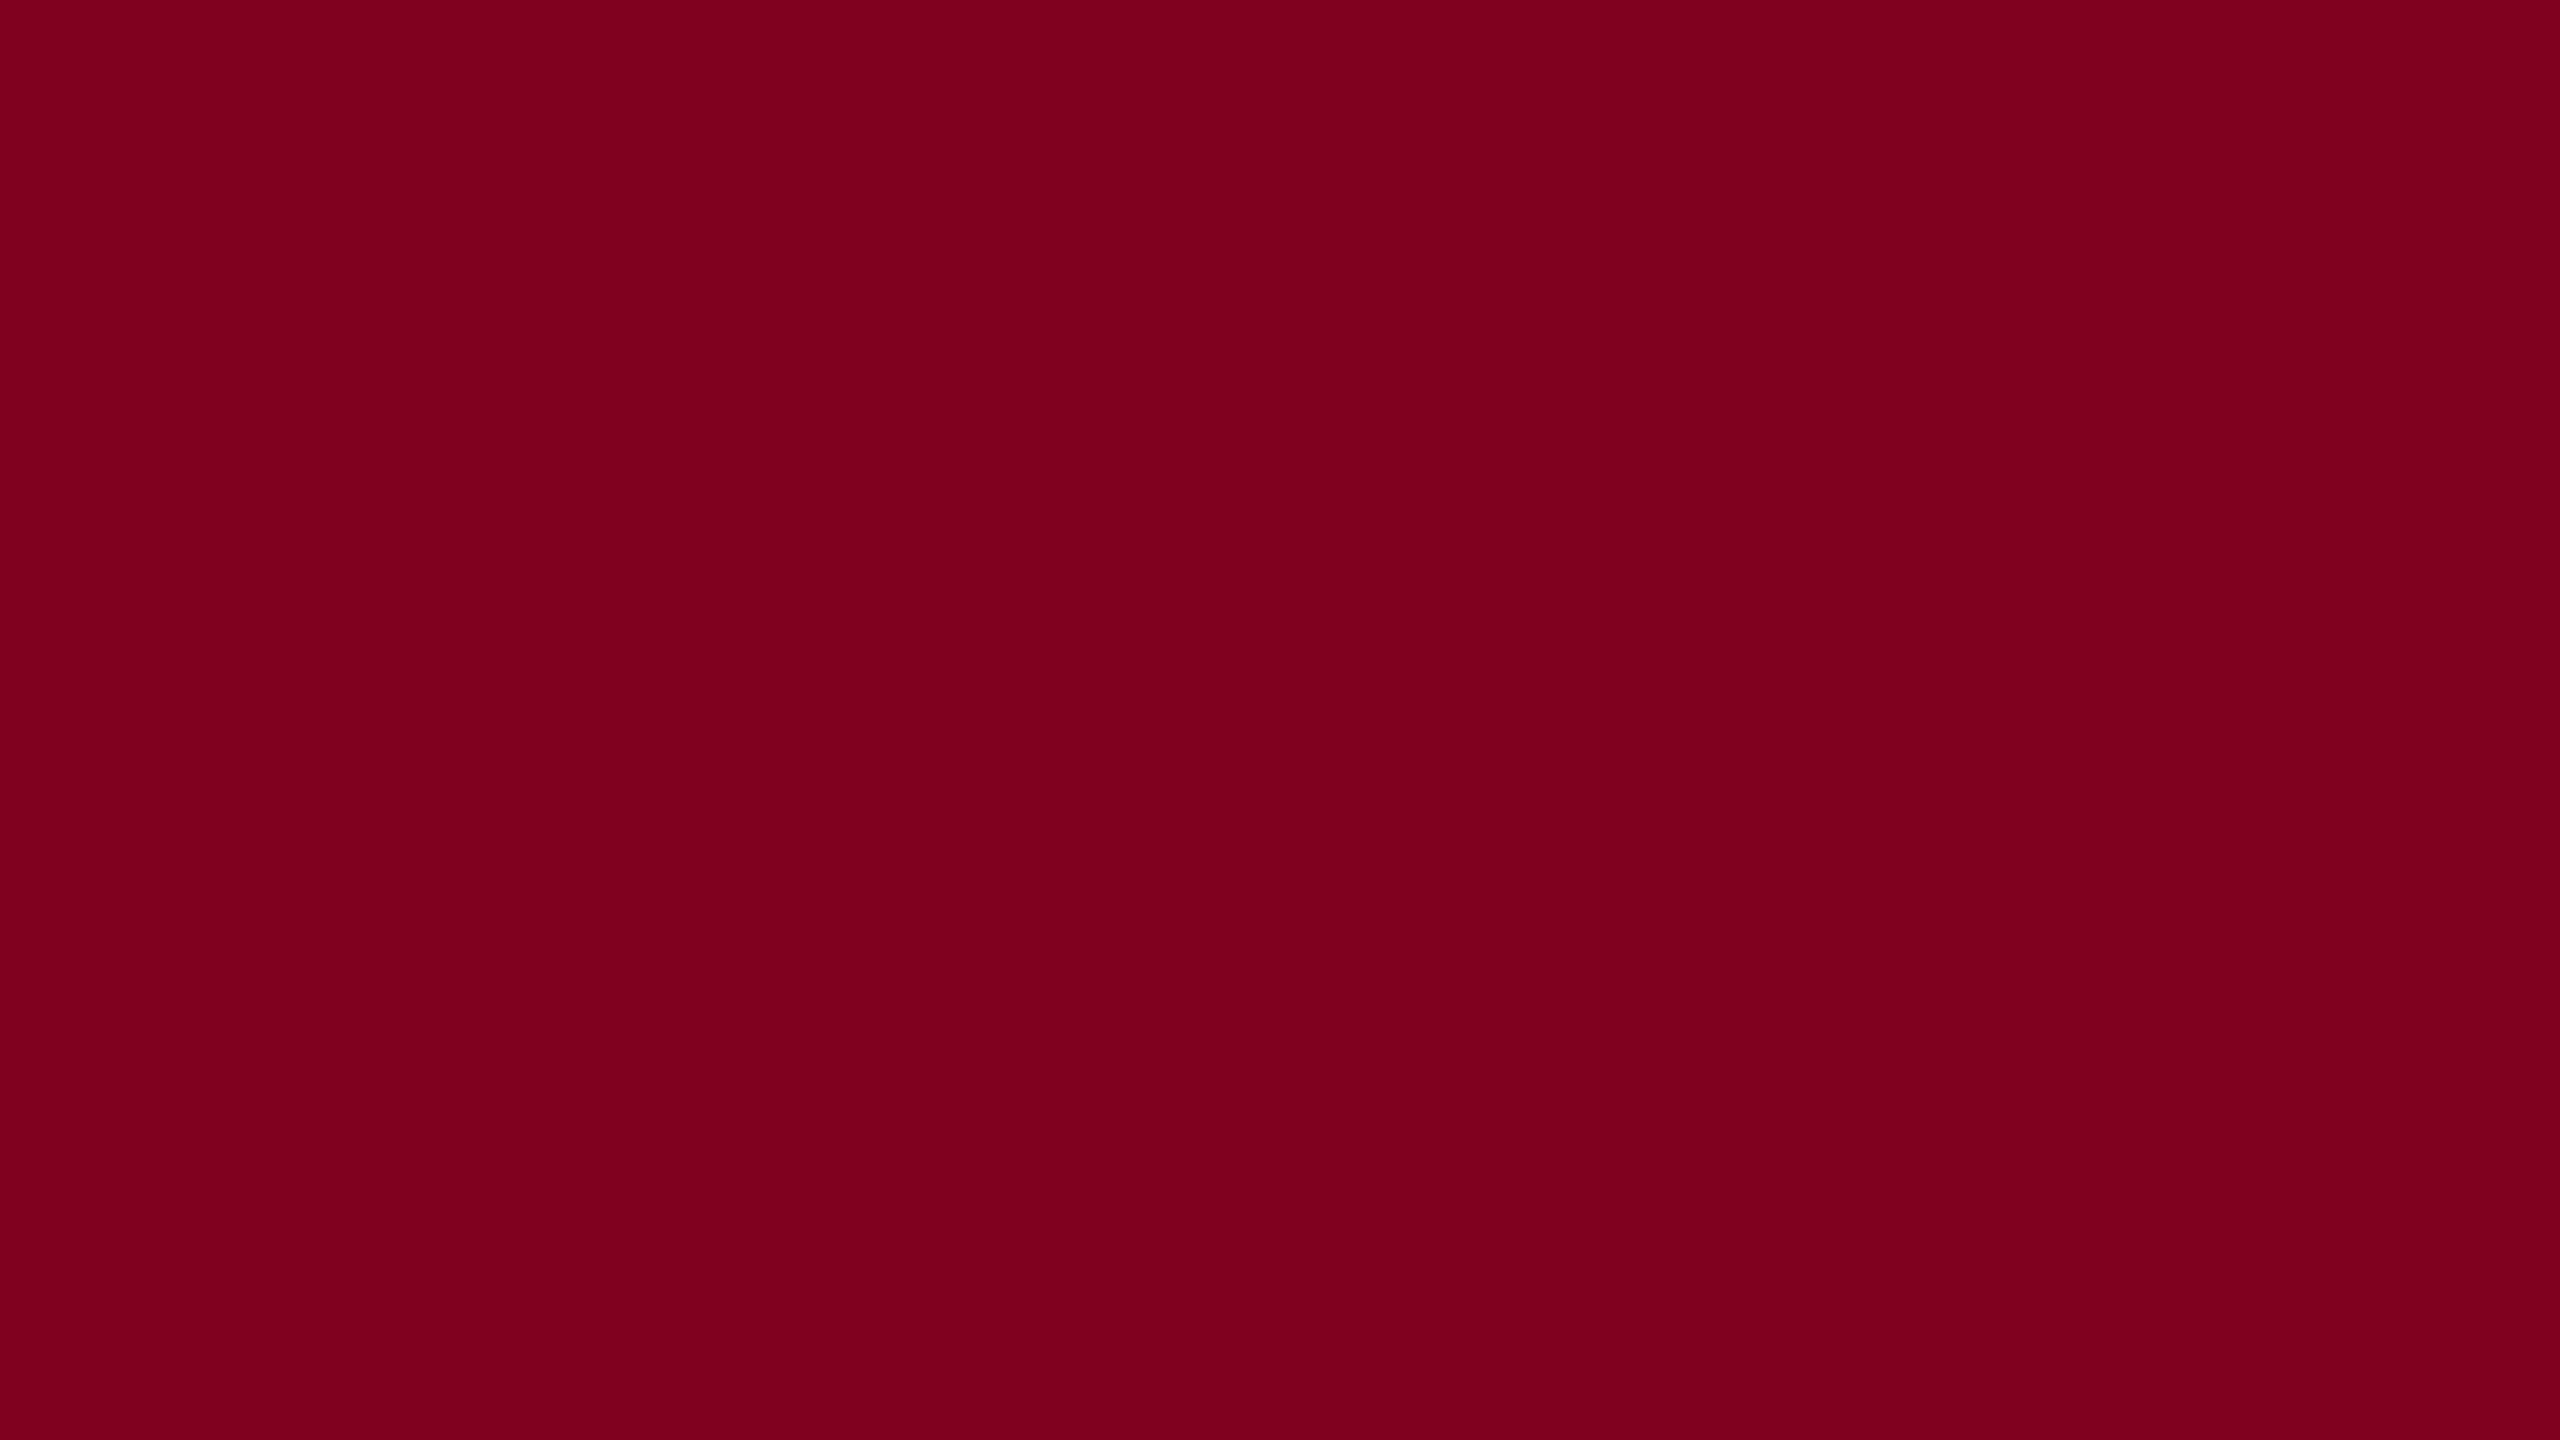 2560x1440 resolution Burgundy solid color background view and 2560x1440